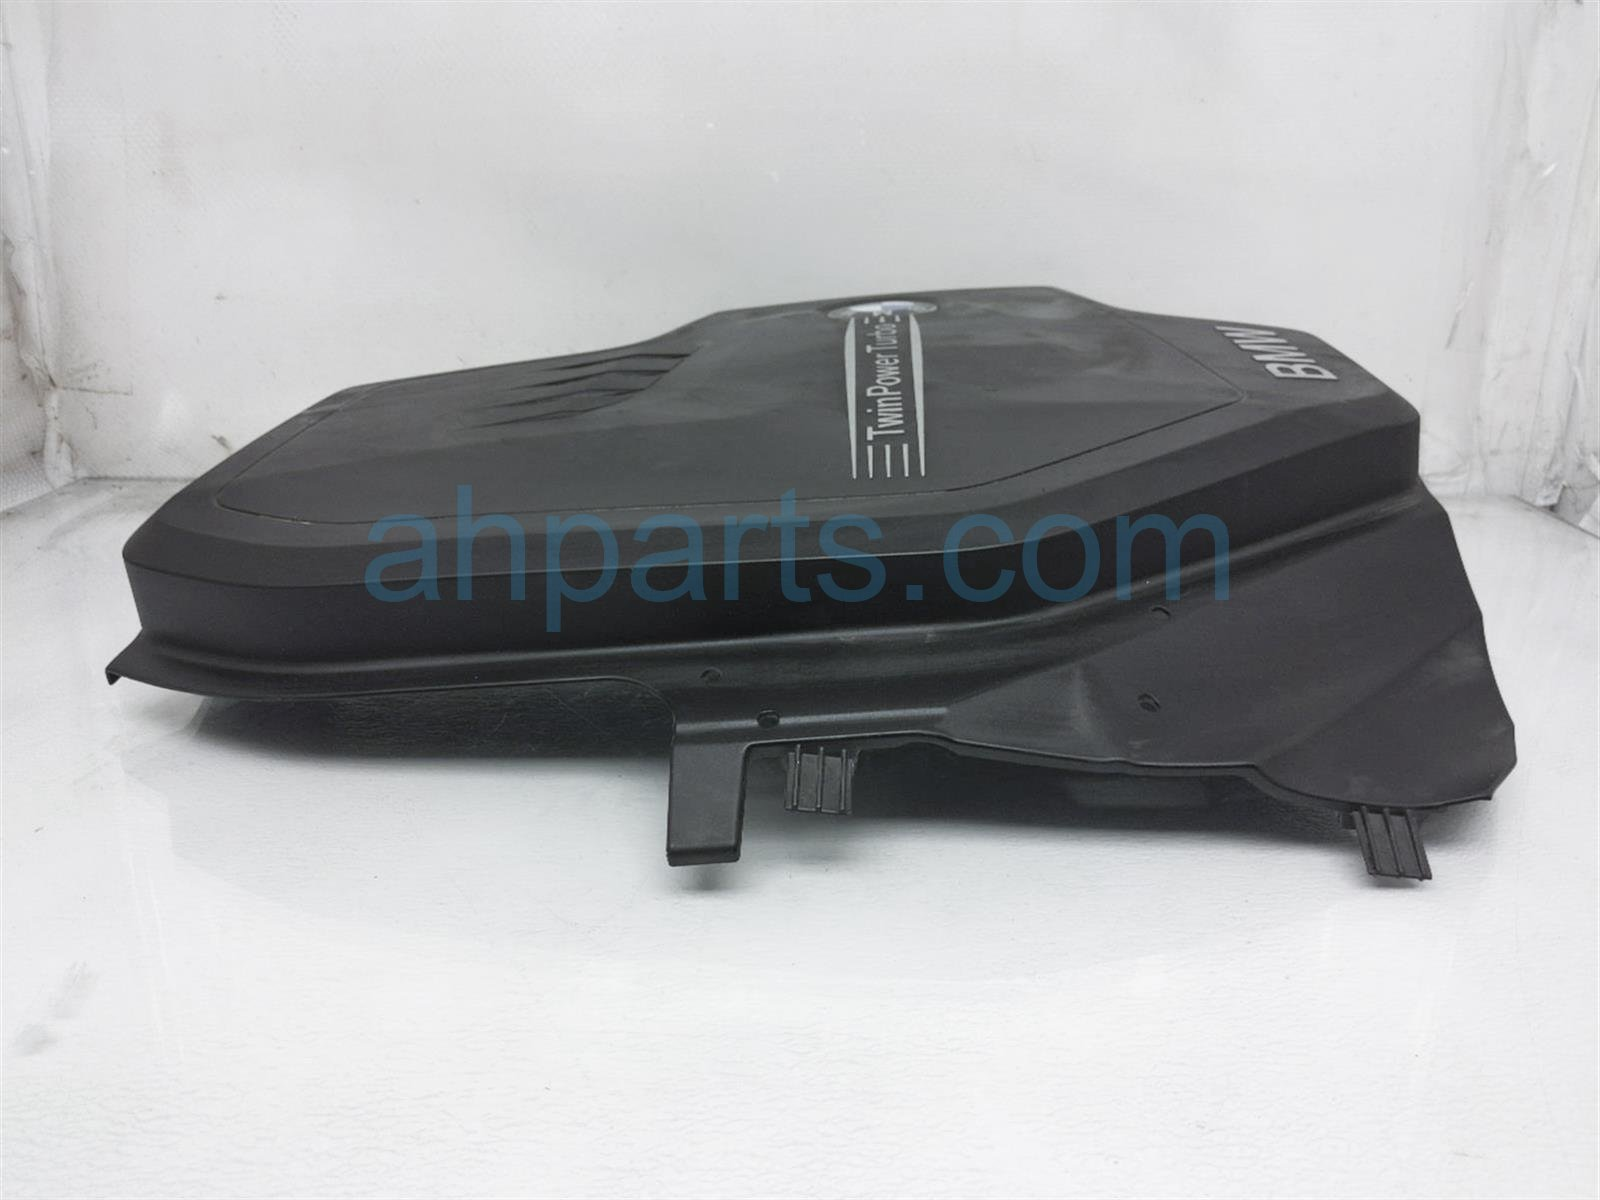 2014 BMW 328i Engine Appearance Cover 11-12-8-610-473